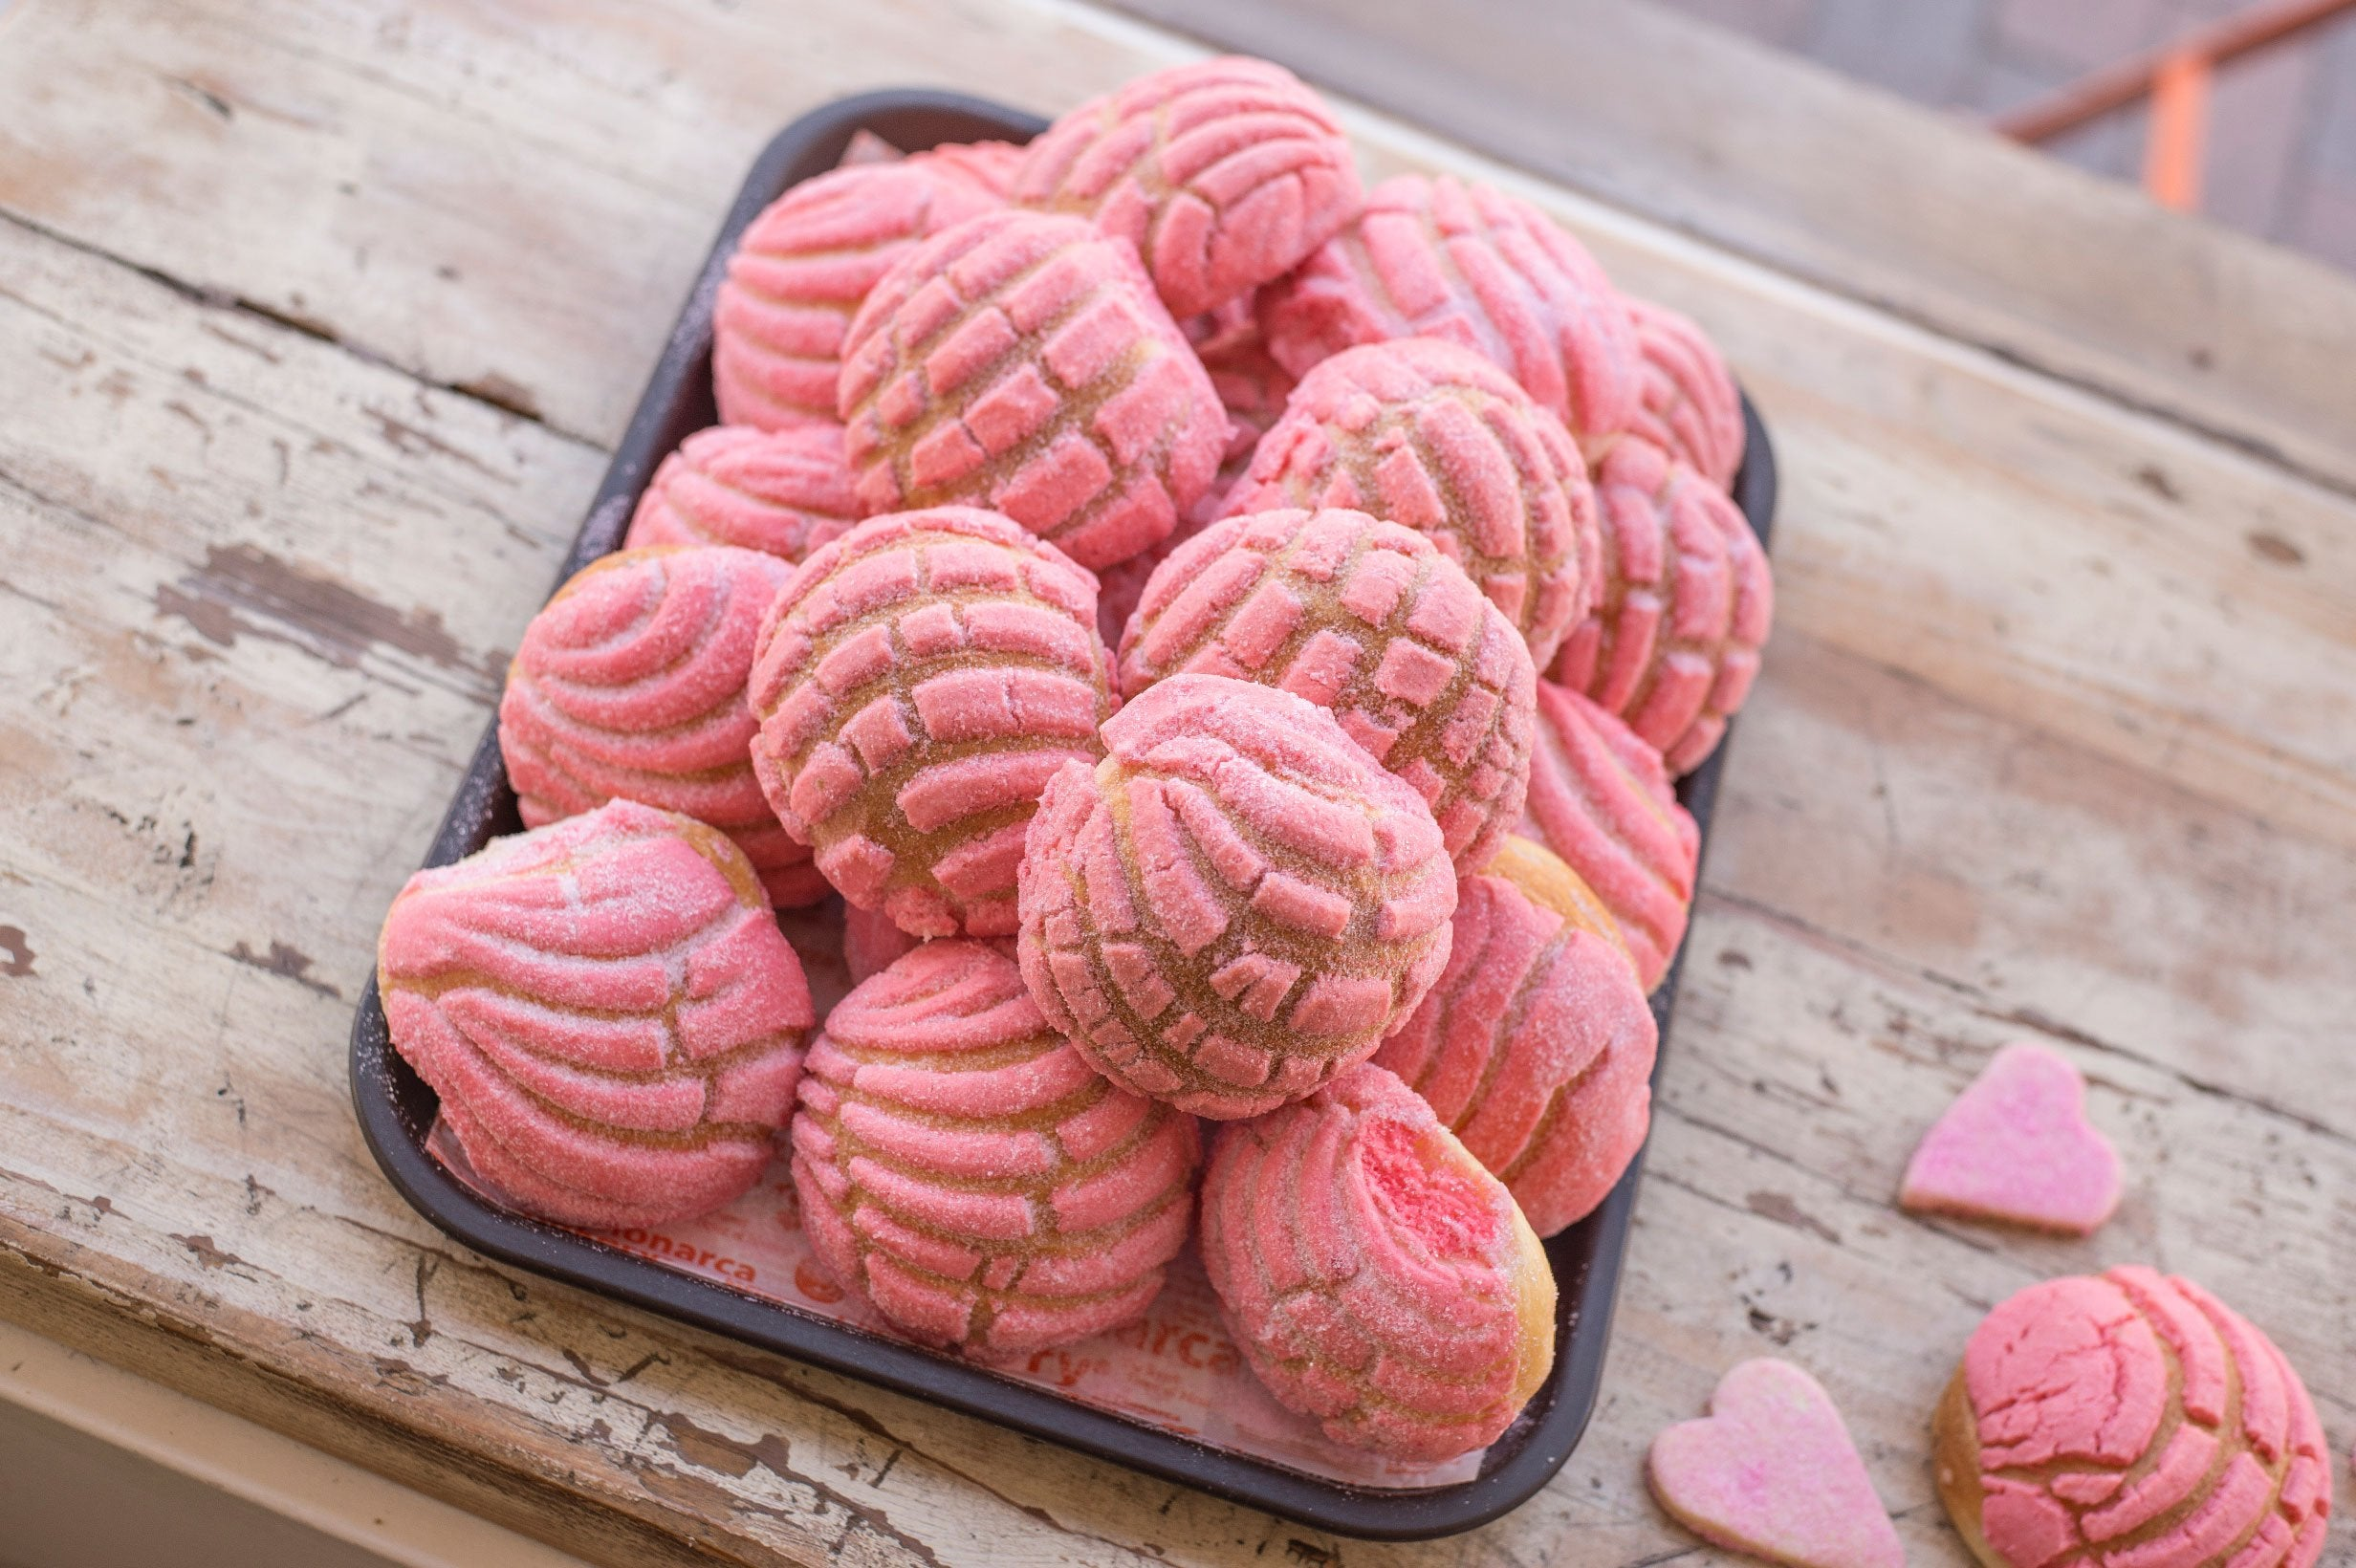 Pink Valentine's Day Conchas